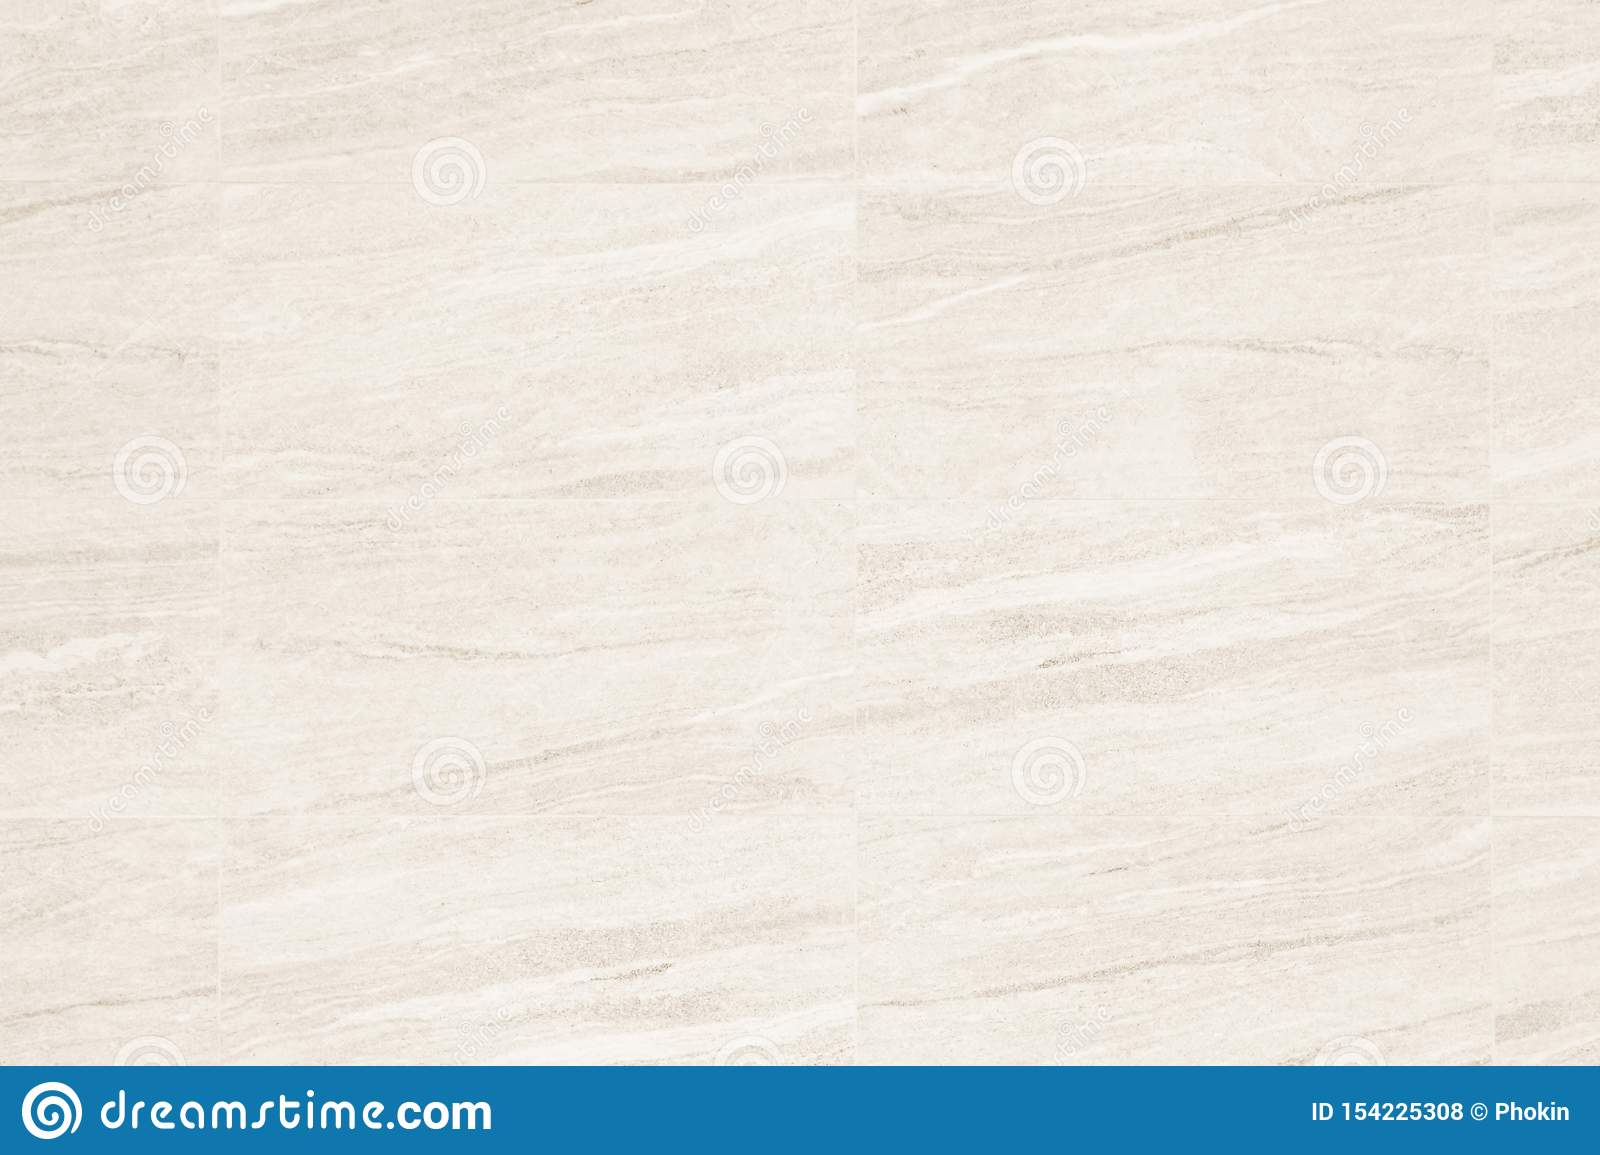 Cream Granite Texture And Background Or Slate Tile Ceramic Seamless Texture Square Light Beige Marble Tiles Seamless Floor Stock Photo Image Of Blots Detail 154225308